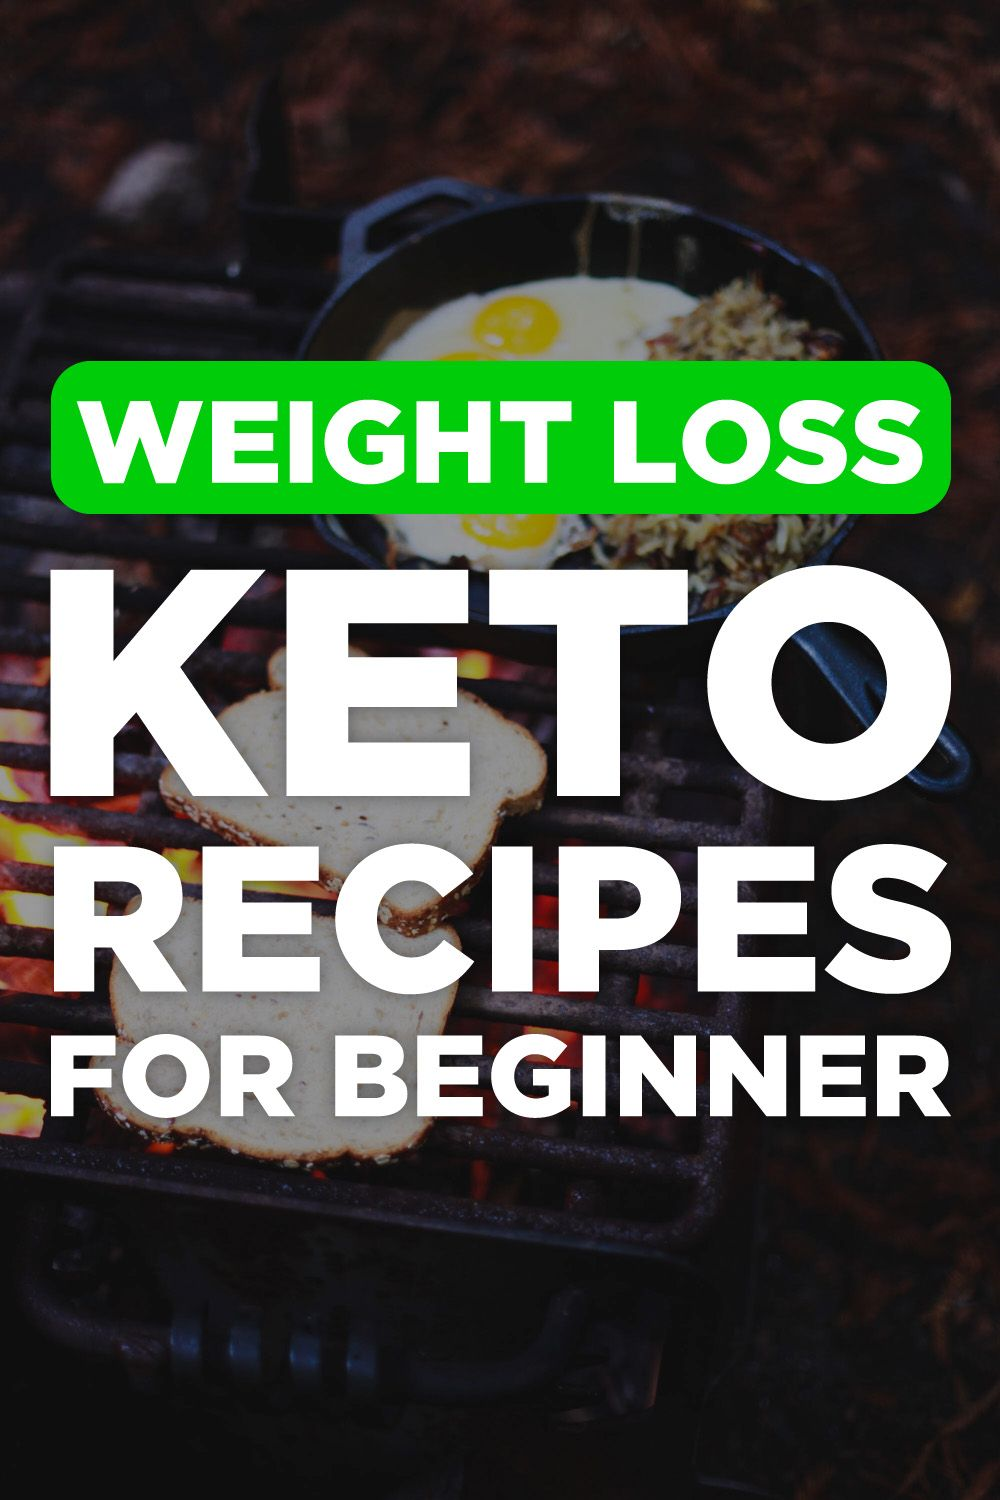 keto adaption, how to lose weight fast without exercise, alkaline diet, ketogenic diet recipes easy, diet recipes healthy, low carb benefits, tummy workout, how to loose belly fat for women, keto diet app, ketogenic recipes dinner keto, lose 80 pounds in 6 months, protien diet, keto diet supplements, diets plans to lose weight for men, healthy eating recipes, atkins diet menus, keto diet plan 21 days, clean eating recipes, phase1 atkins recipes, keto diet on a budget, losing